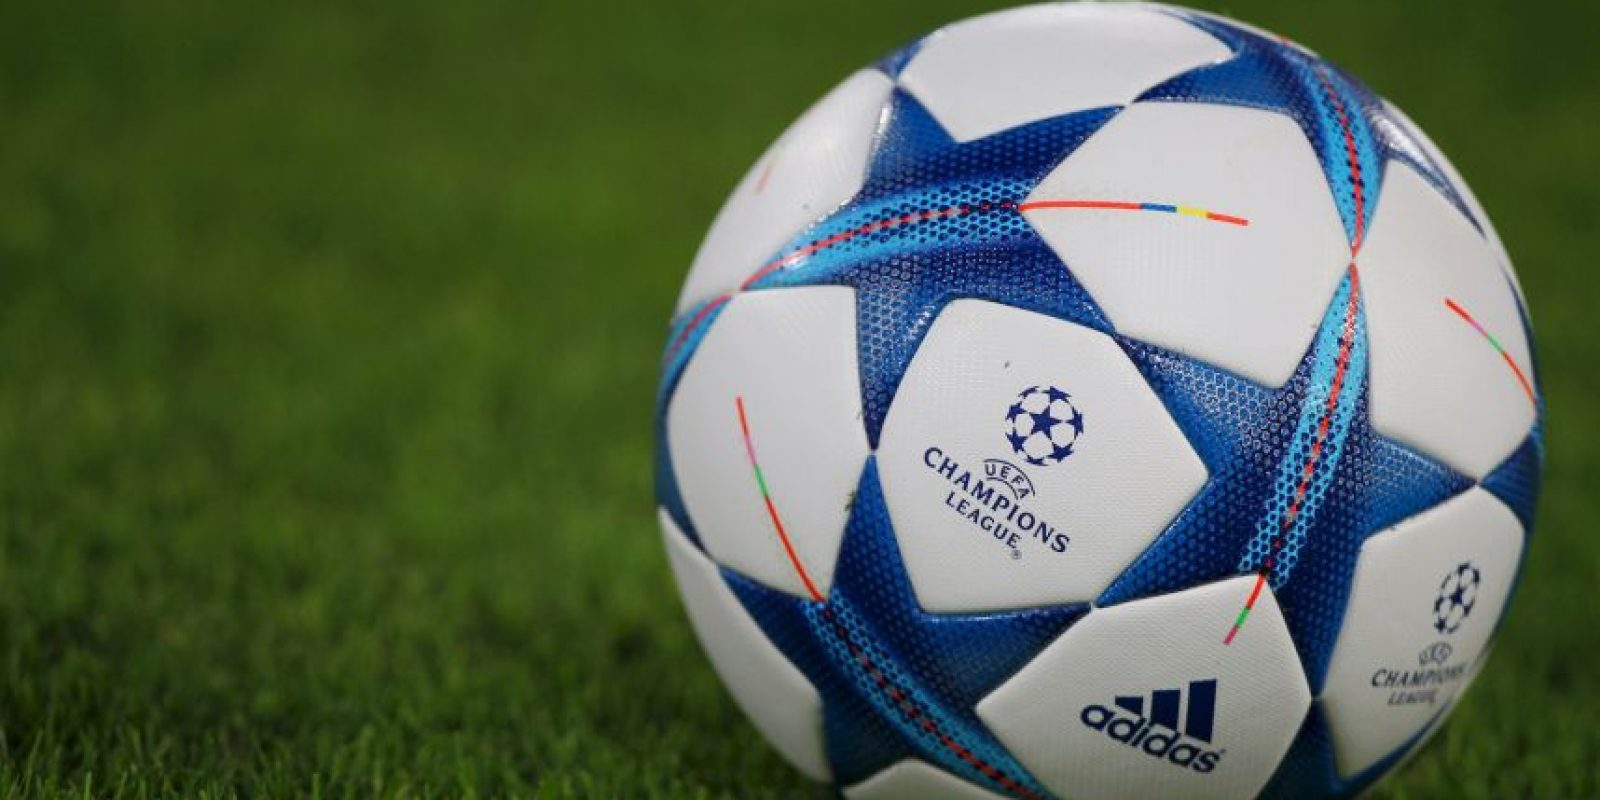 Continúa la jornada 3 de la Champions League. Foto: Getty Images